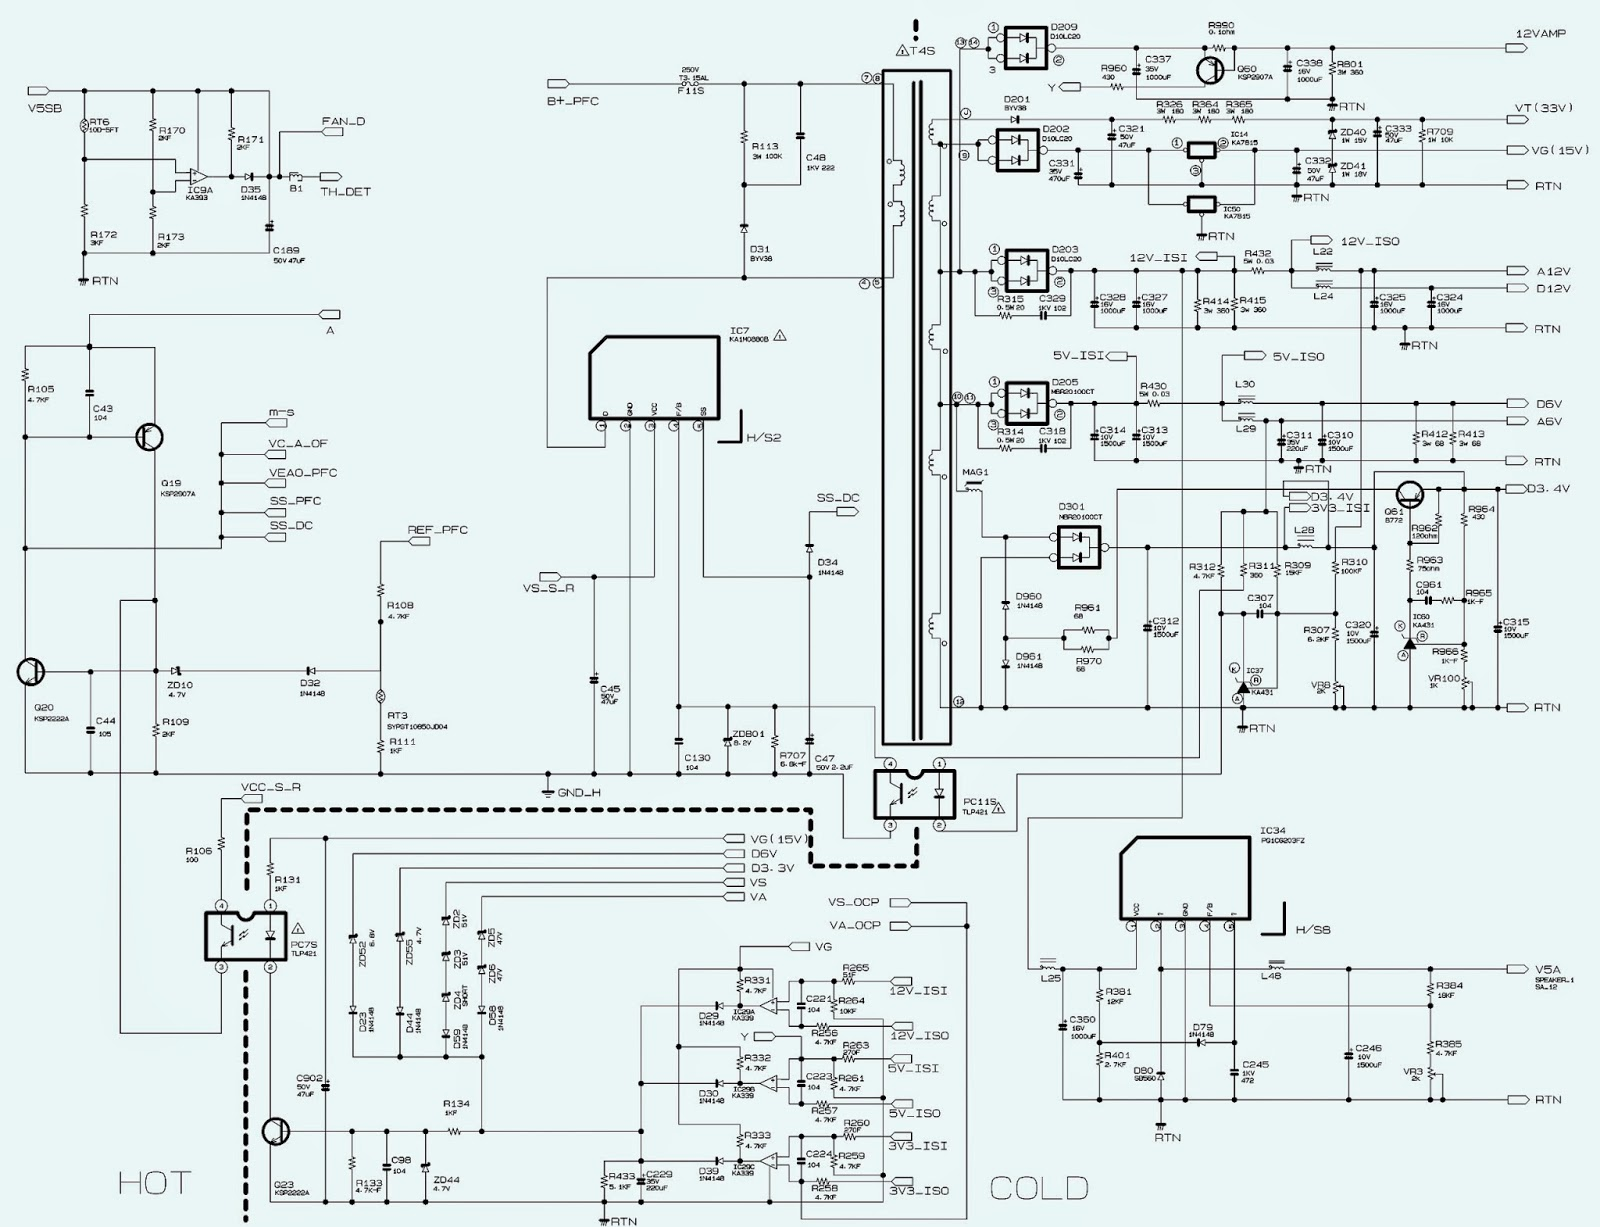 Samsung Power Supply Schematic Diagrams Books Of Wiring Diagram Lcd Tv On Plasma Bn 96 Circuit